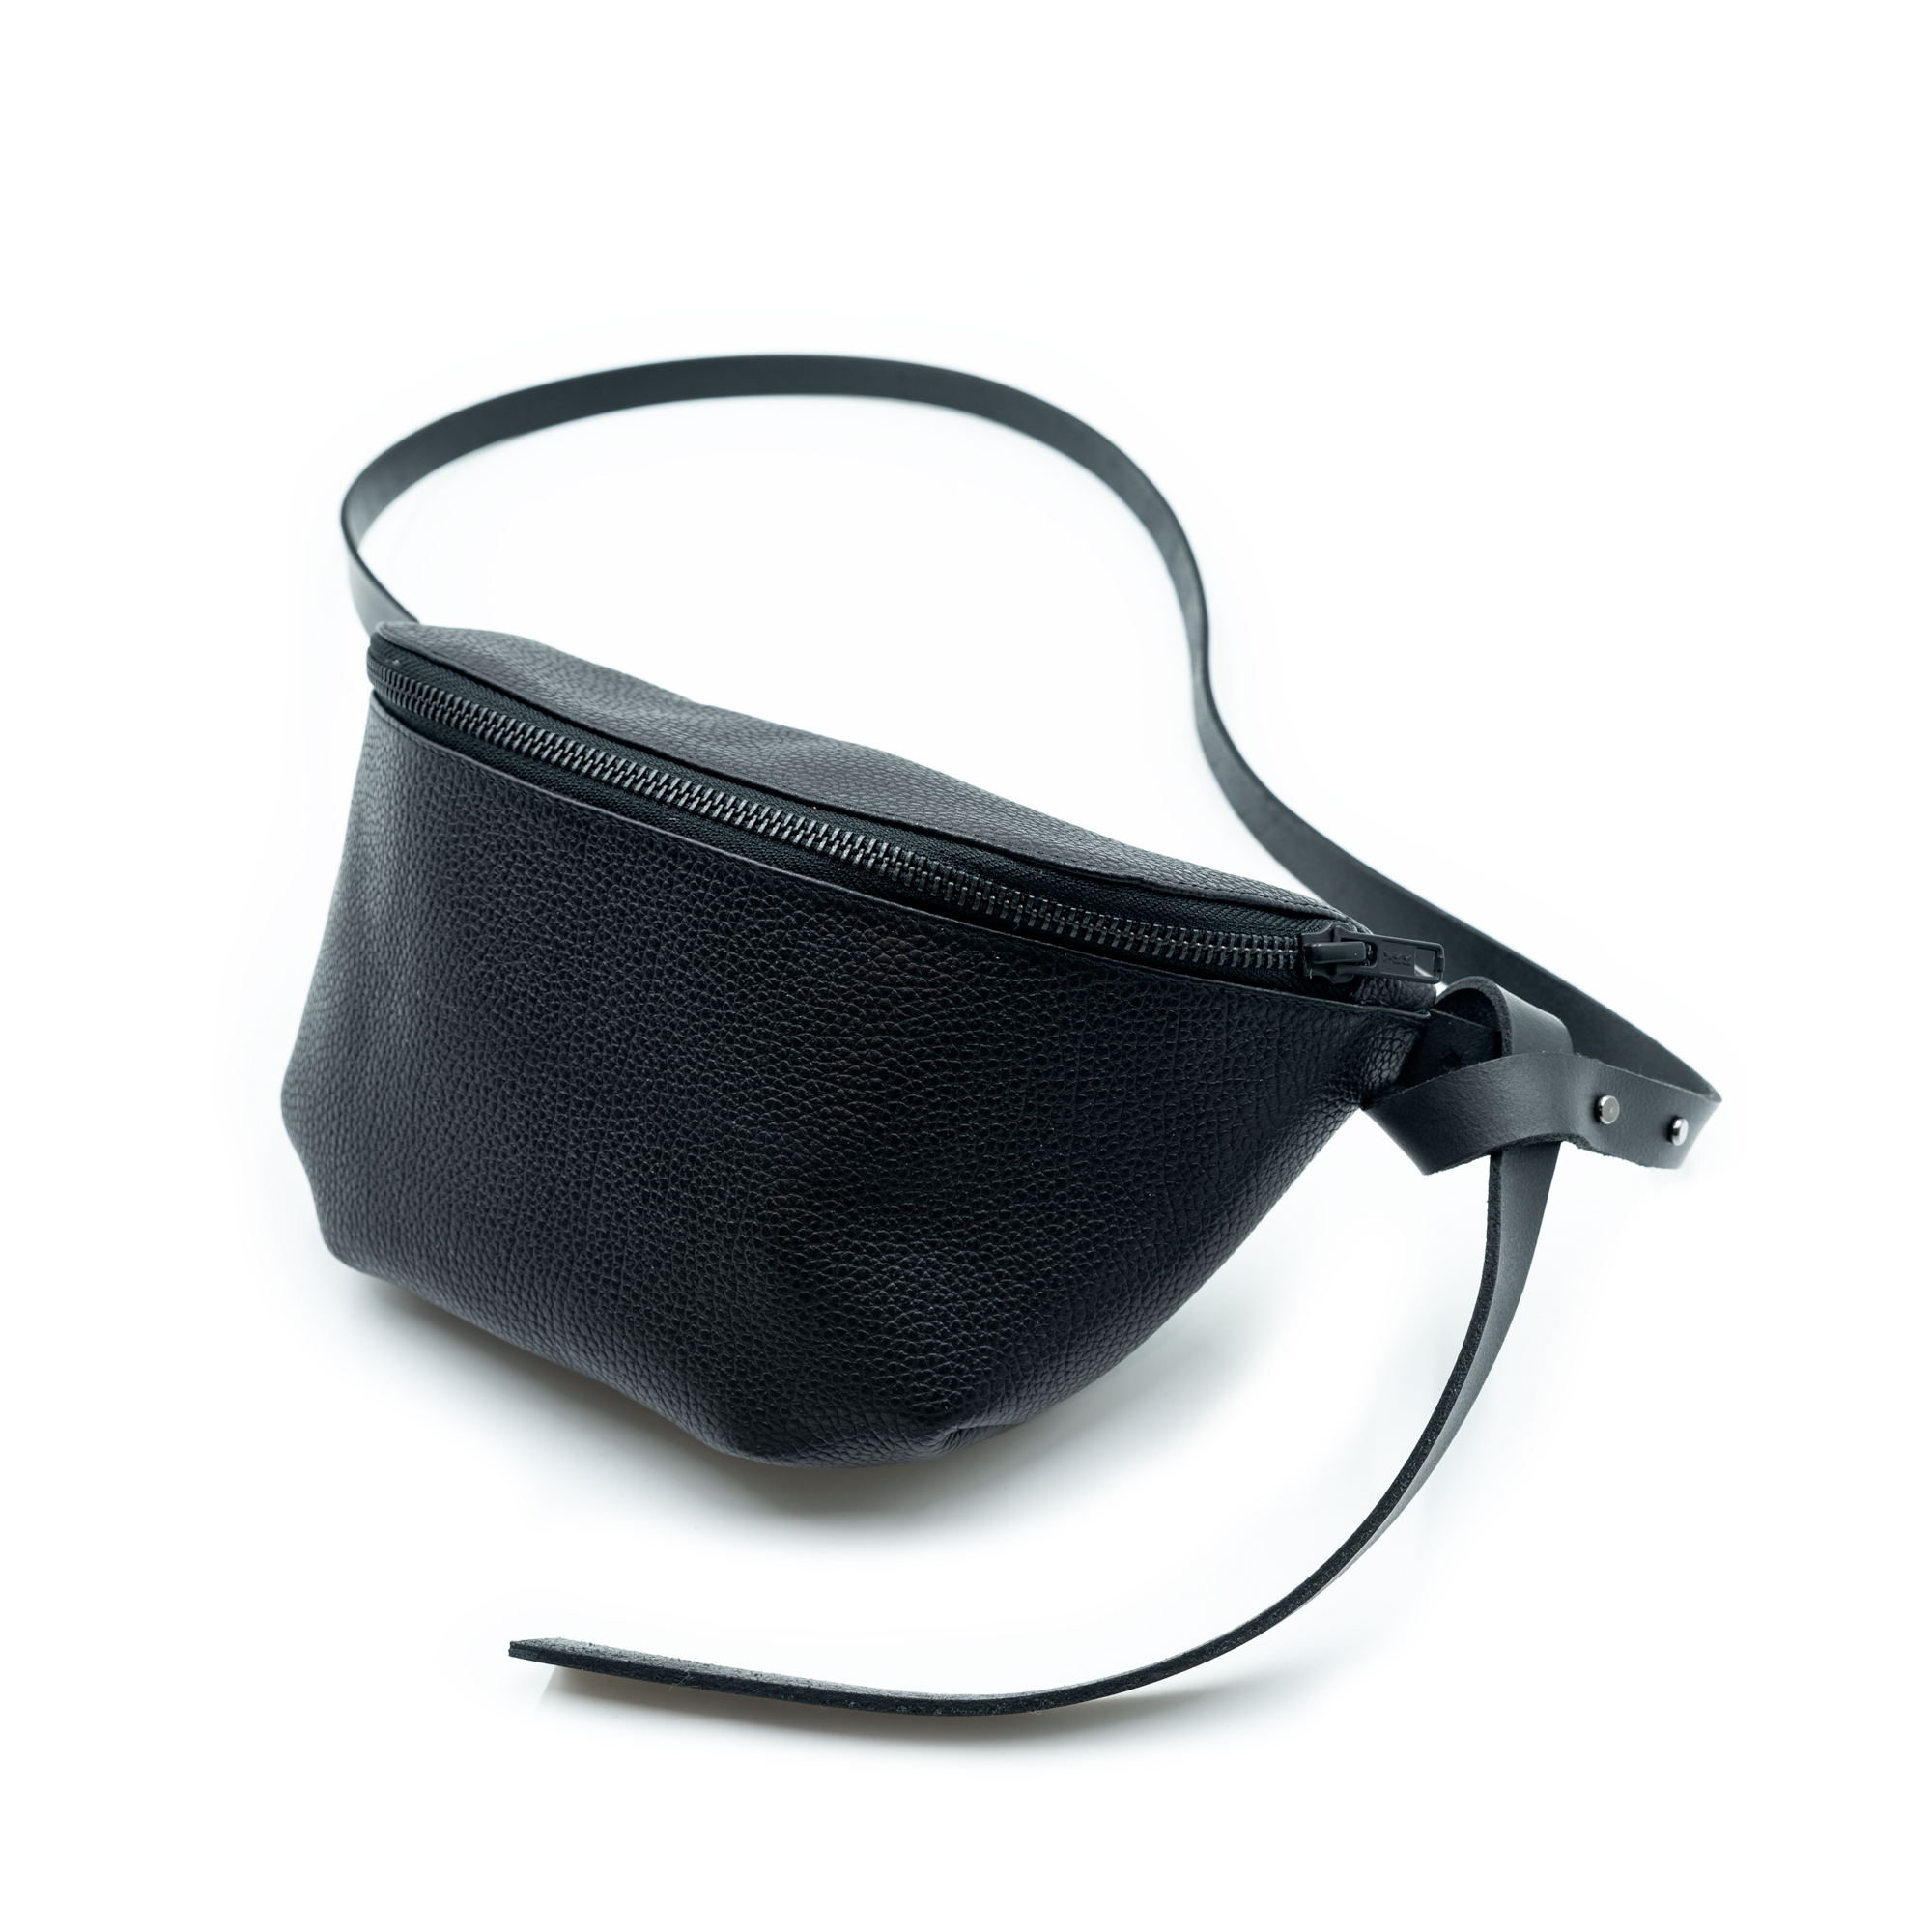 Leather beltbag by June9Concept